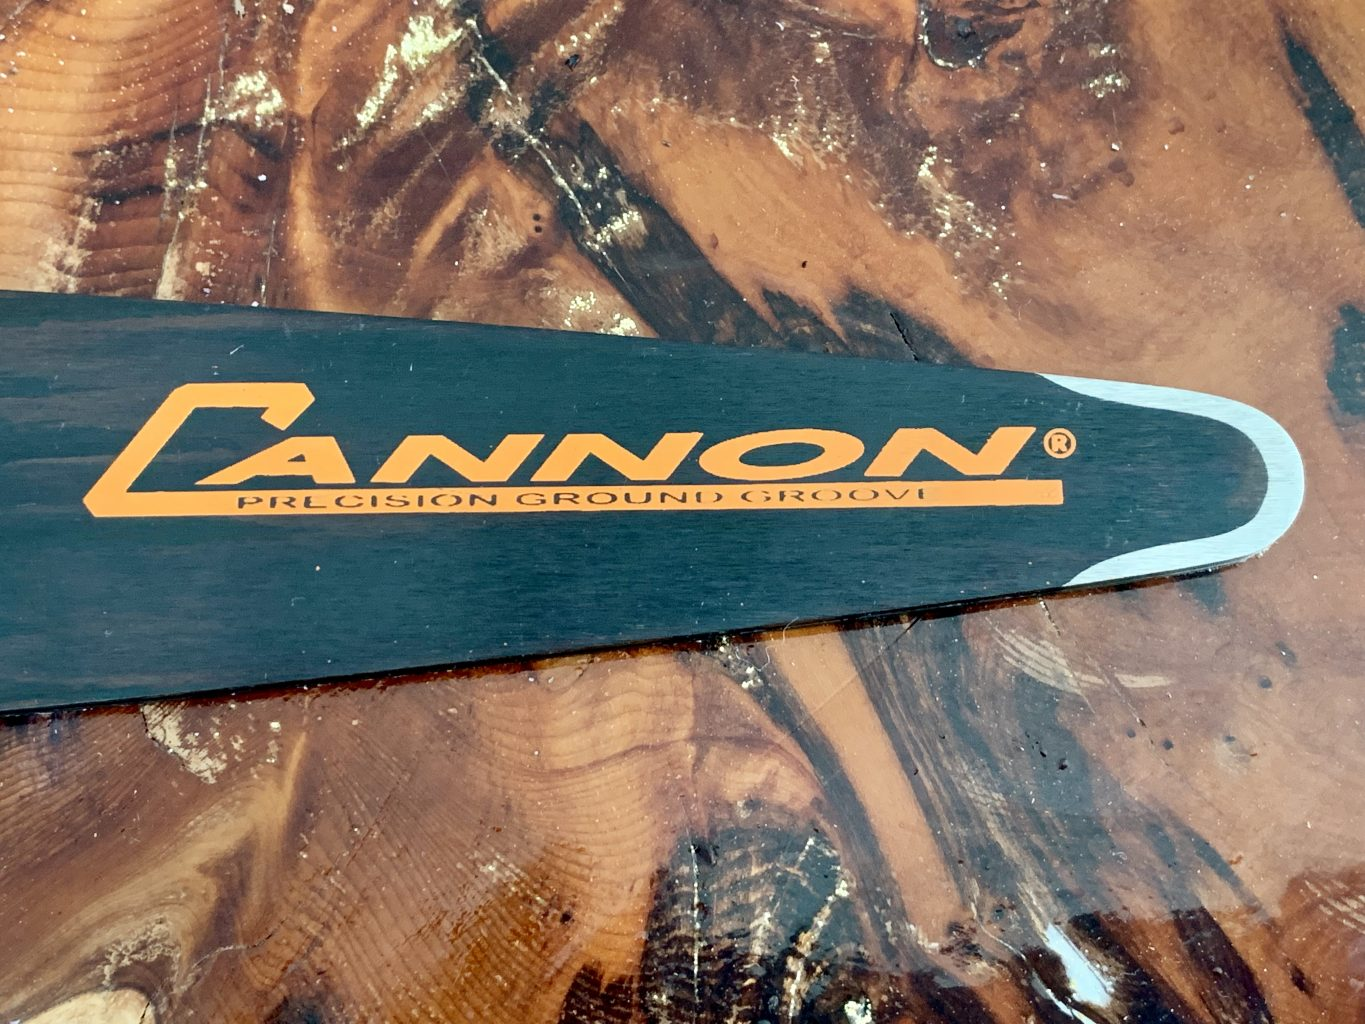 """CCT-H1-24-50 Cannon Carving Toonie Tip 24""""[50cm] 3/8 Lo Pro .050 82 drive links or .325 .050 92 drive links or 1/4"""" .050 118 drive links"""